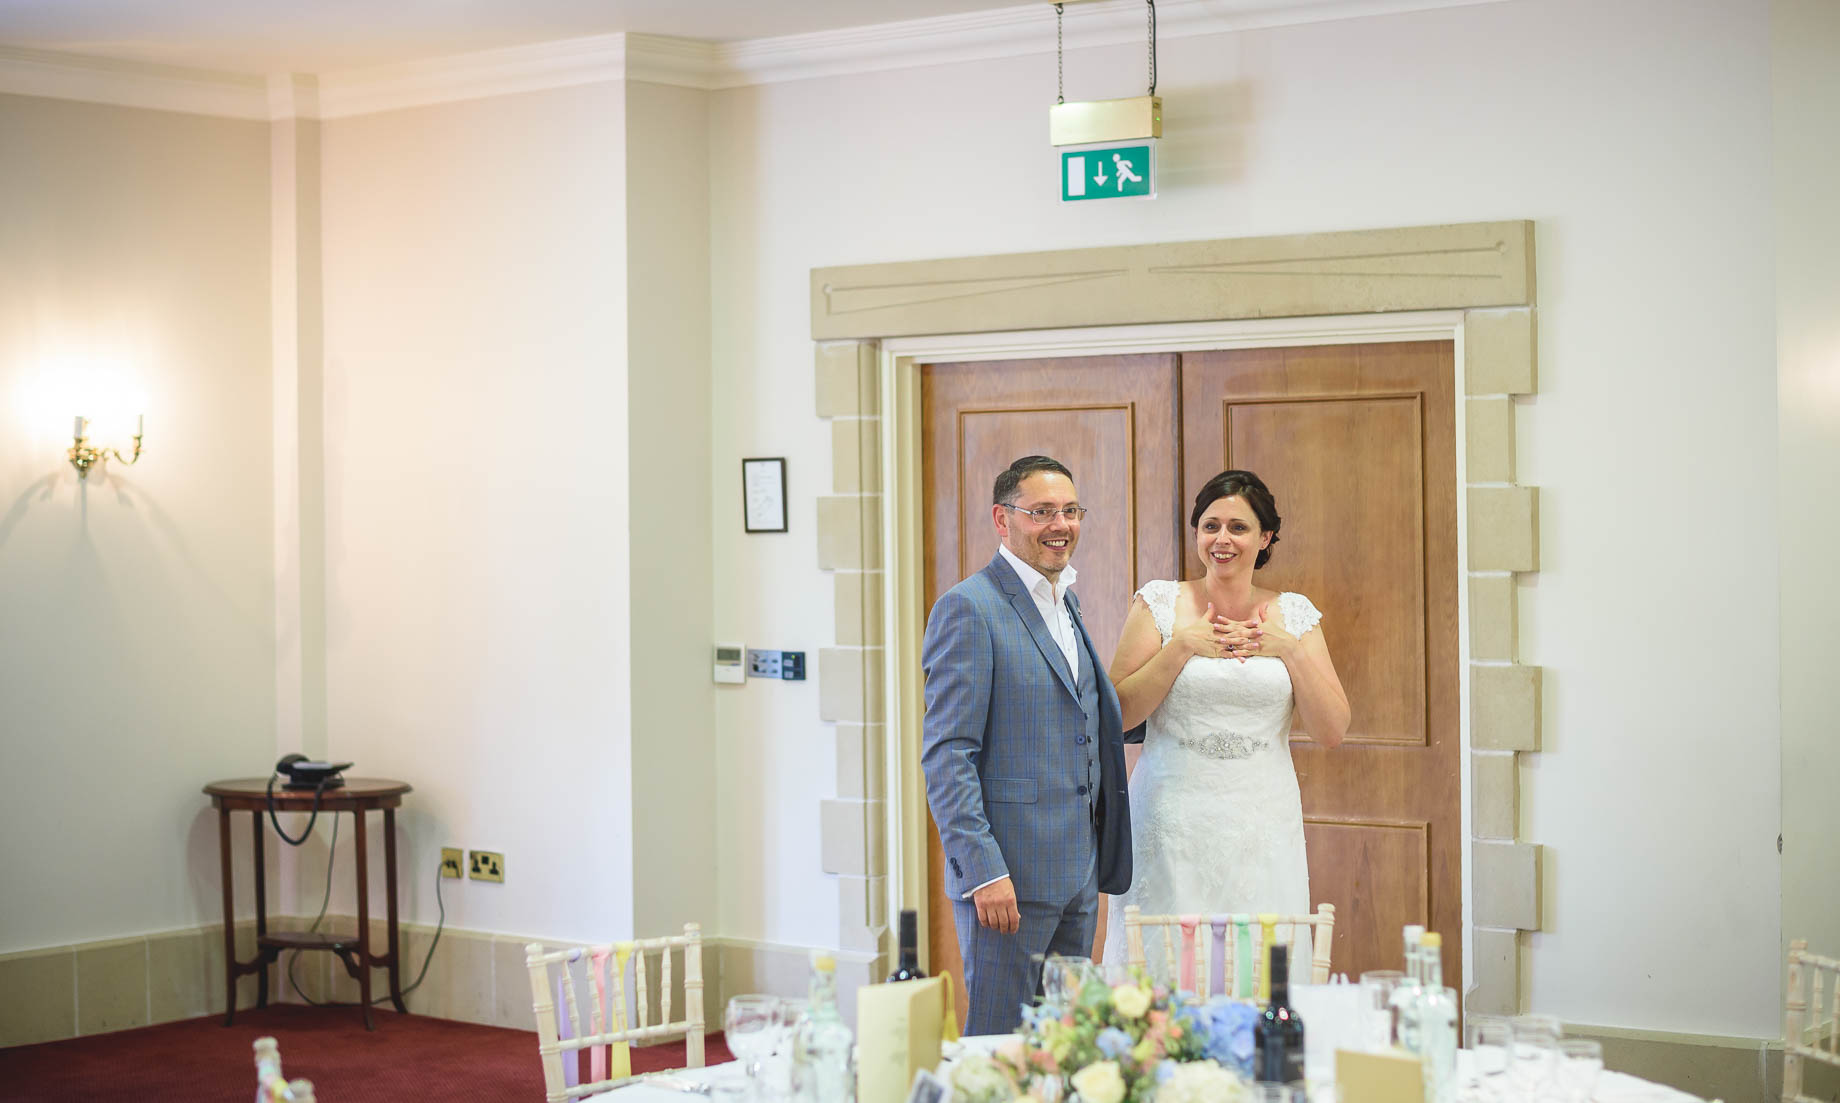 Luton Hoo wedding photography by Guy Collier Photography - Lauren and Gem (117 of 178)